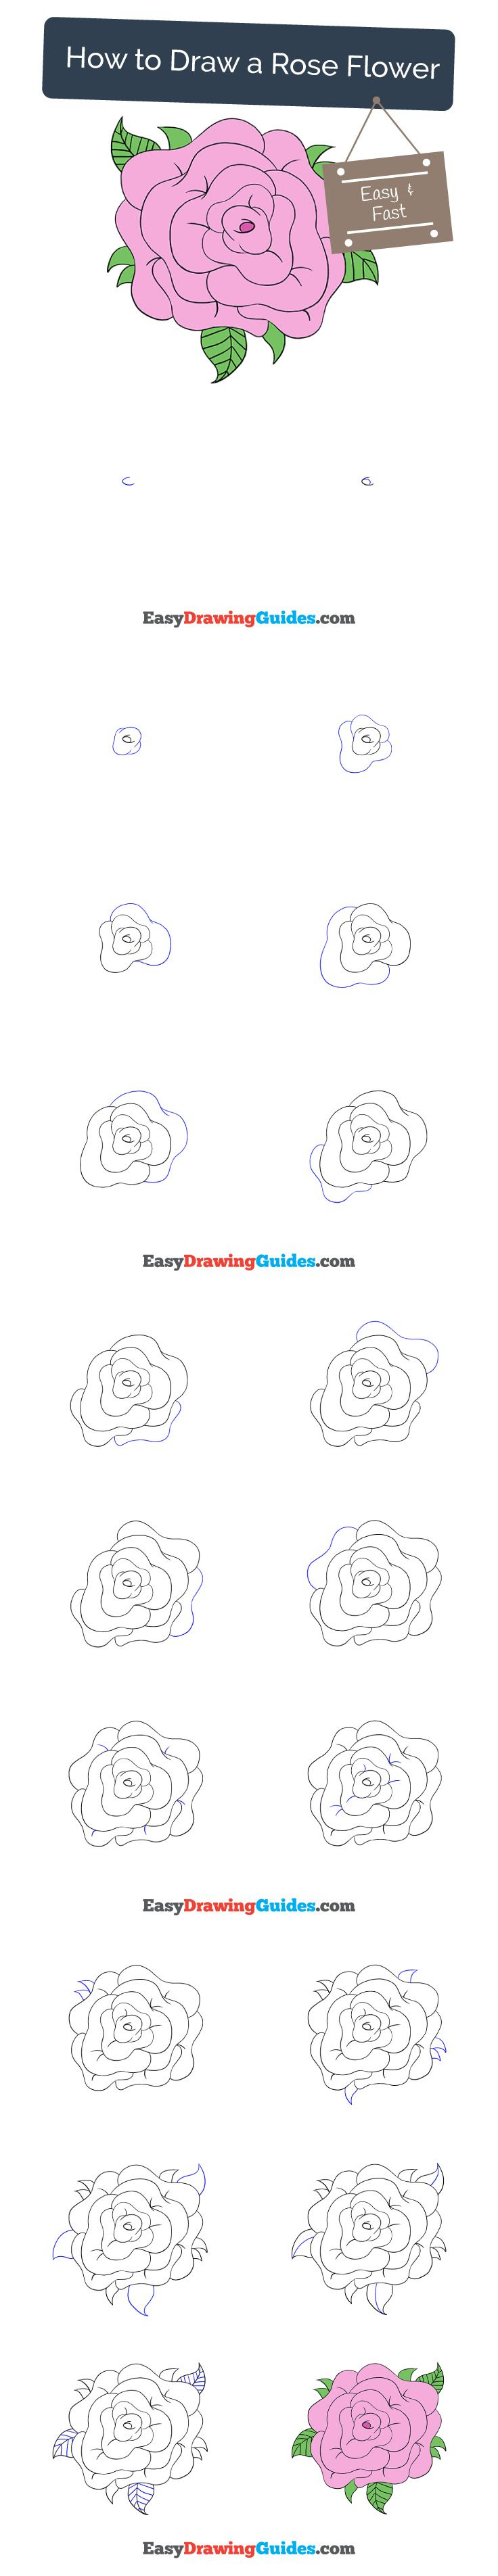 How To Draw A Rose Easy For Kids Step By Step